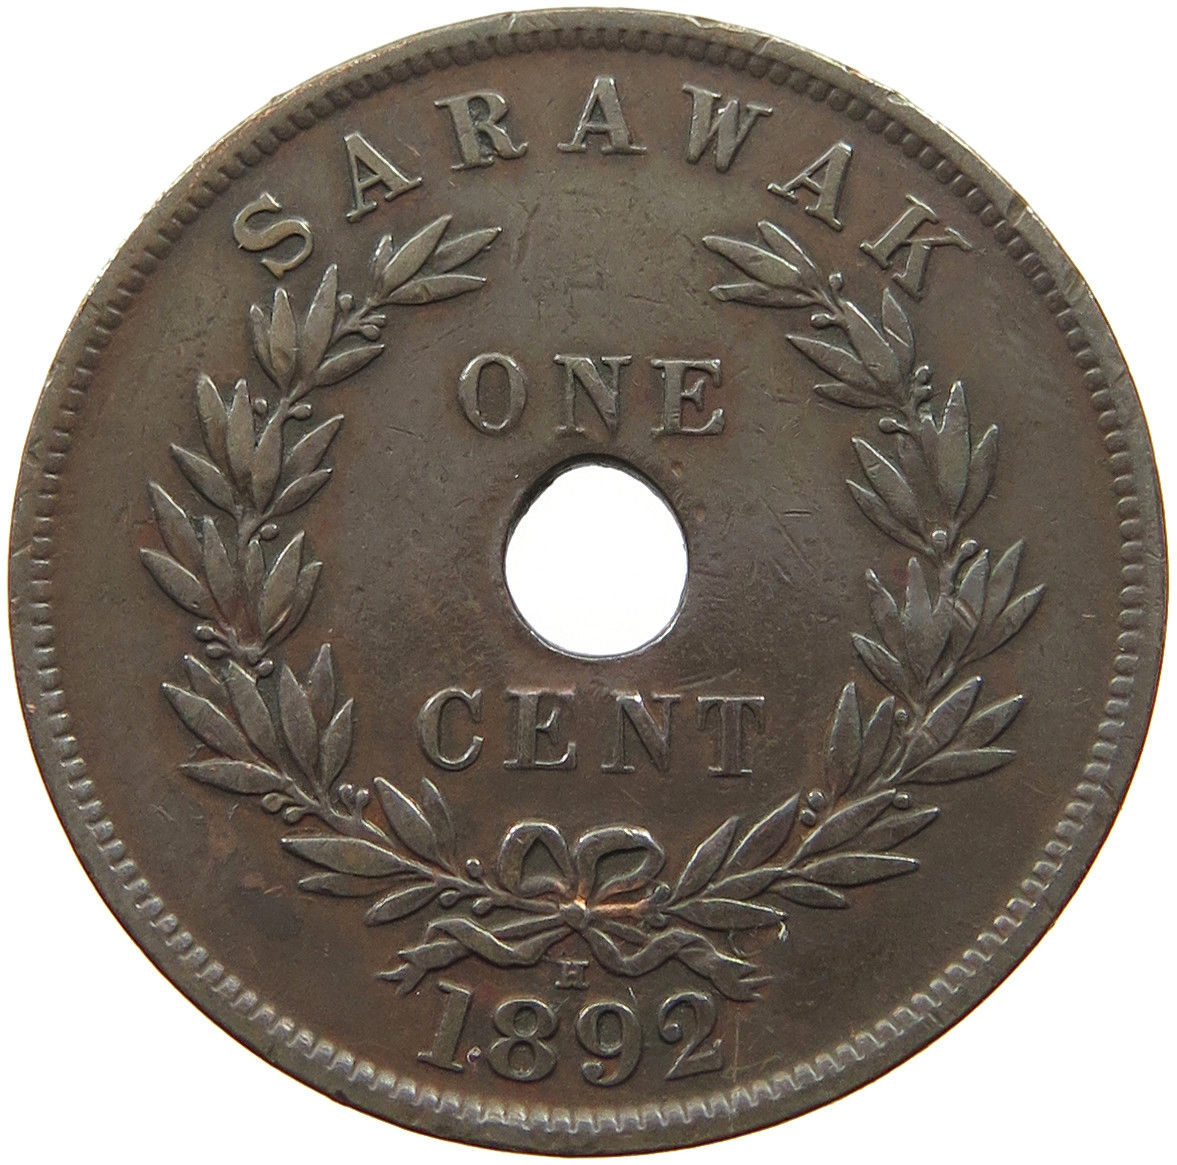 One Cent: Photo Coin - 1 Cent, Sarawak, 1892